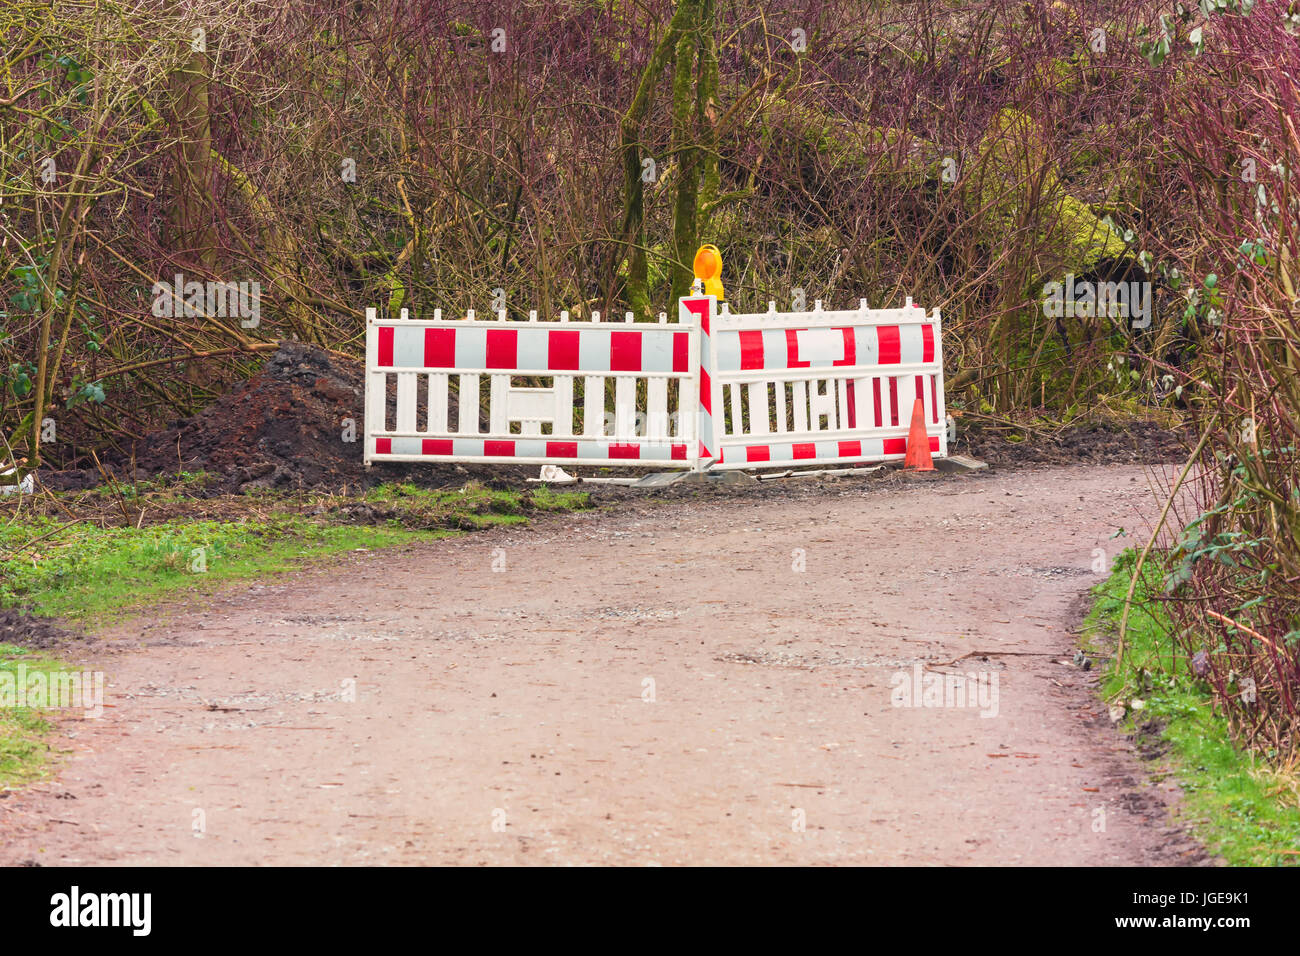 Red and White Street Barricade. Road block or construction site barrier on a road. - Stock Image